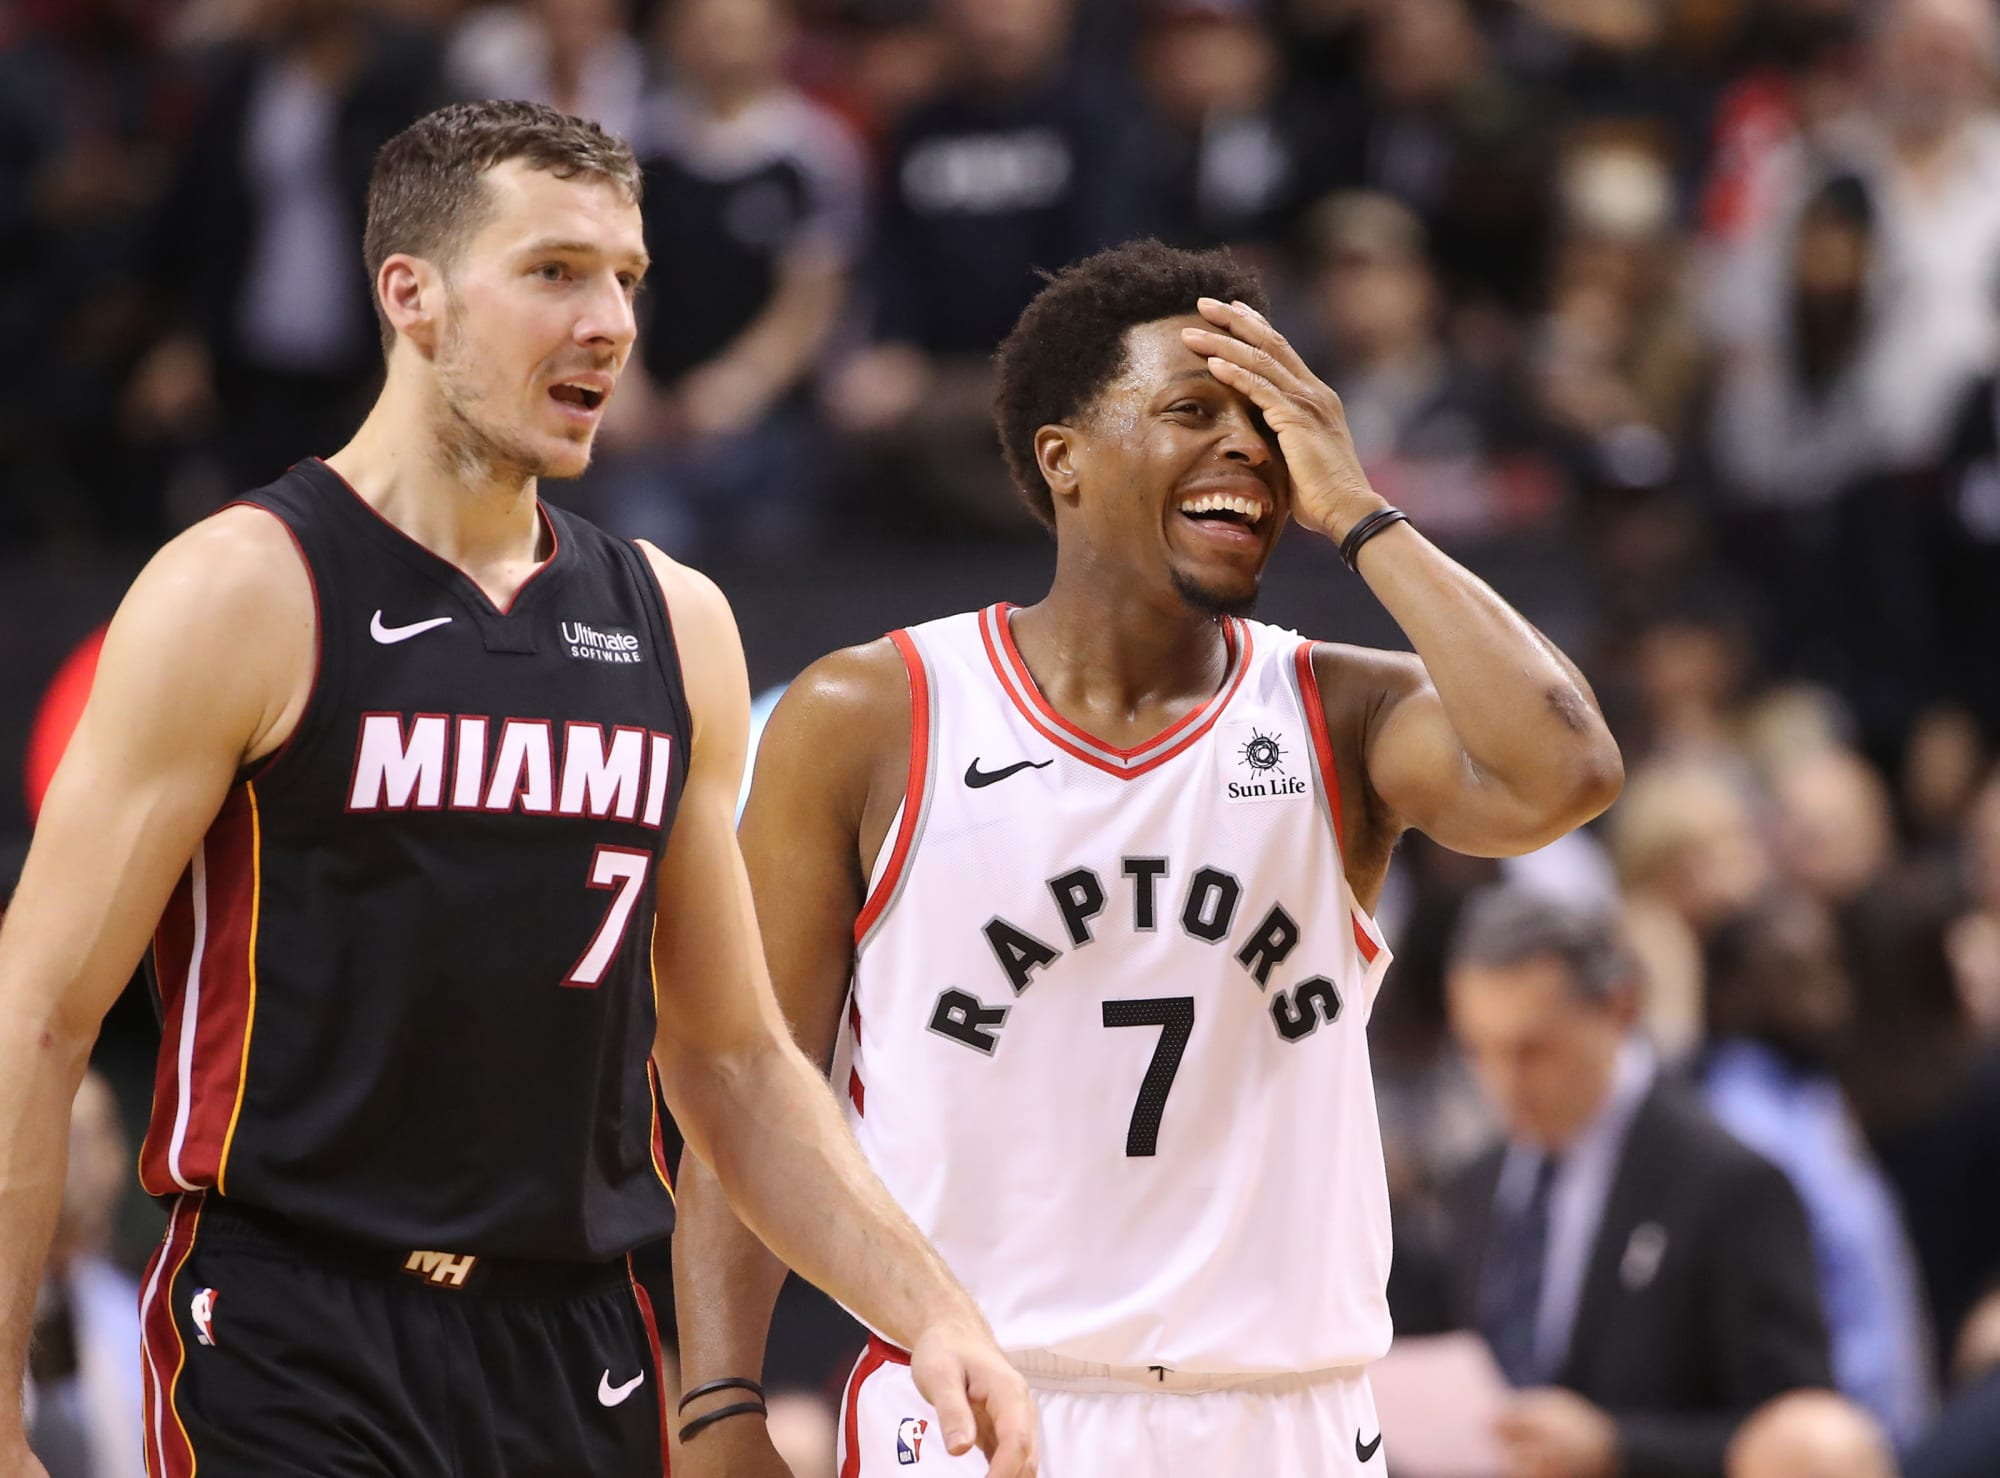 Toronto Raptors: Heat have offered Kendrick Nunn and Goran Dragic in Kyle Lowry trade